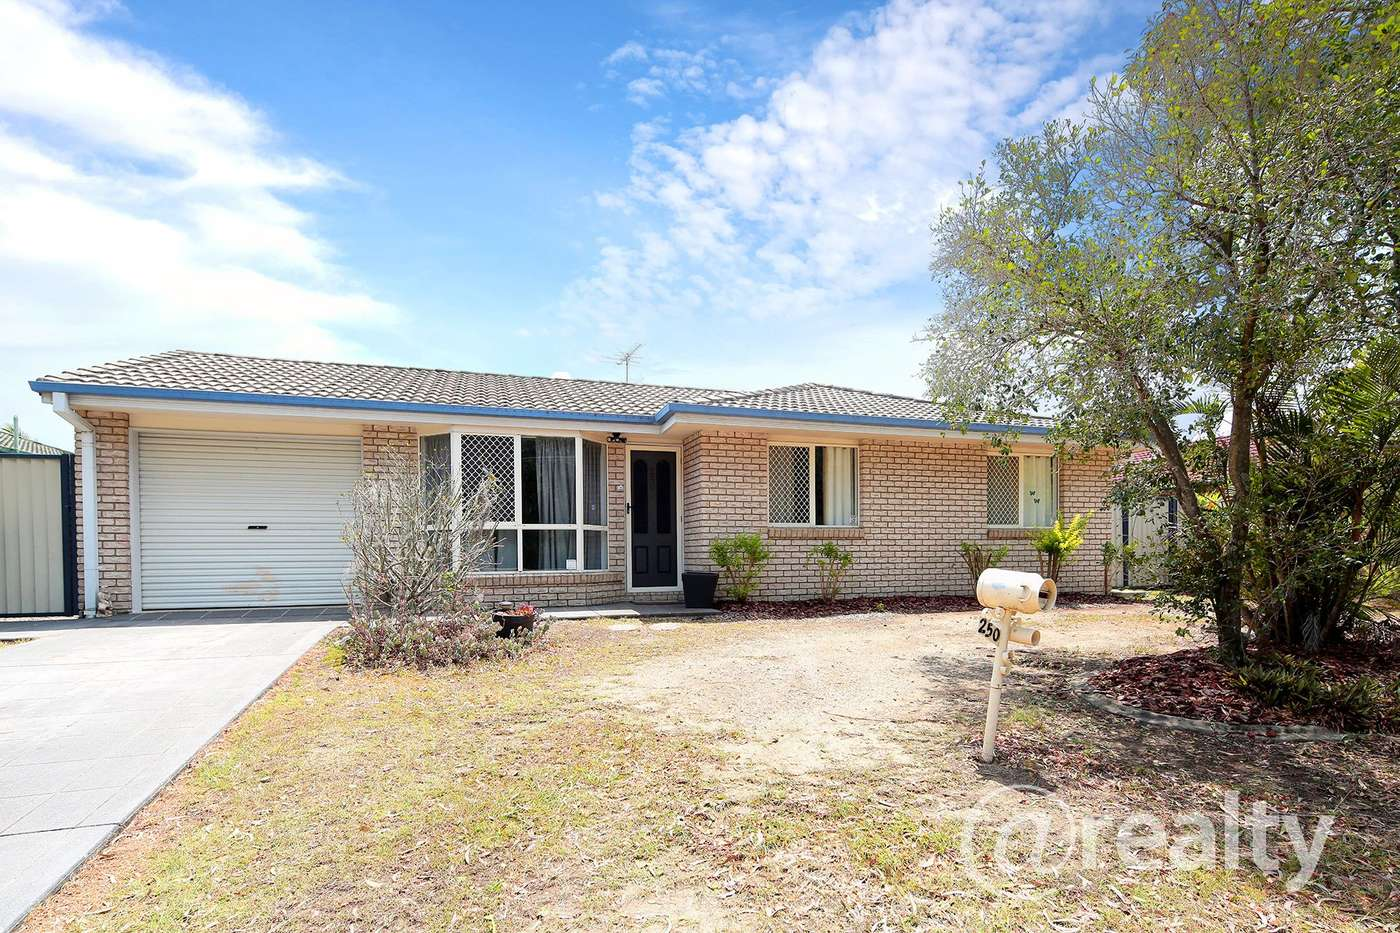 Main view of Homely house listing, 250 Todds Road, Lawnton, QLD 4501